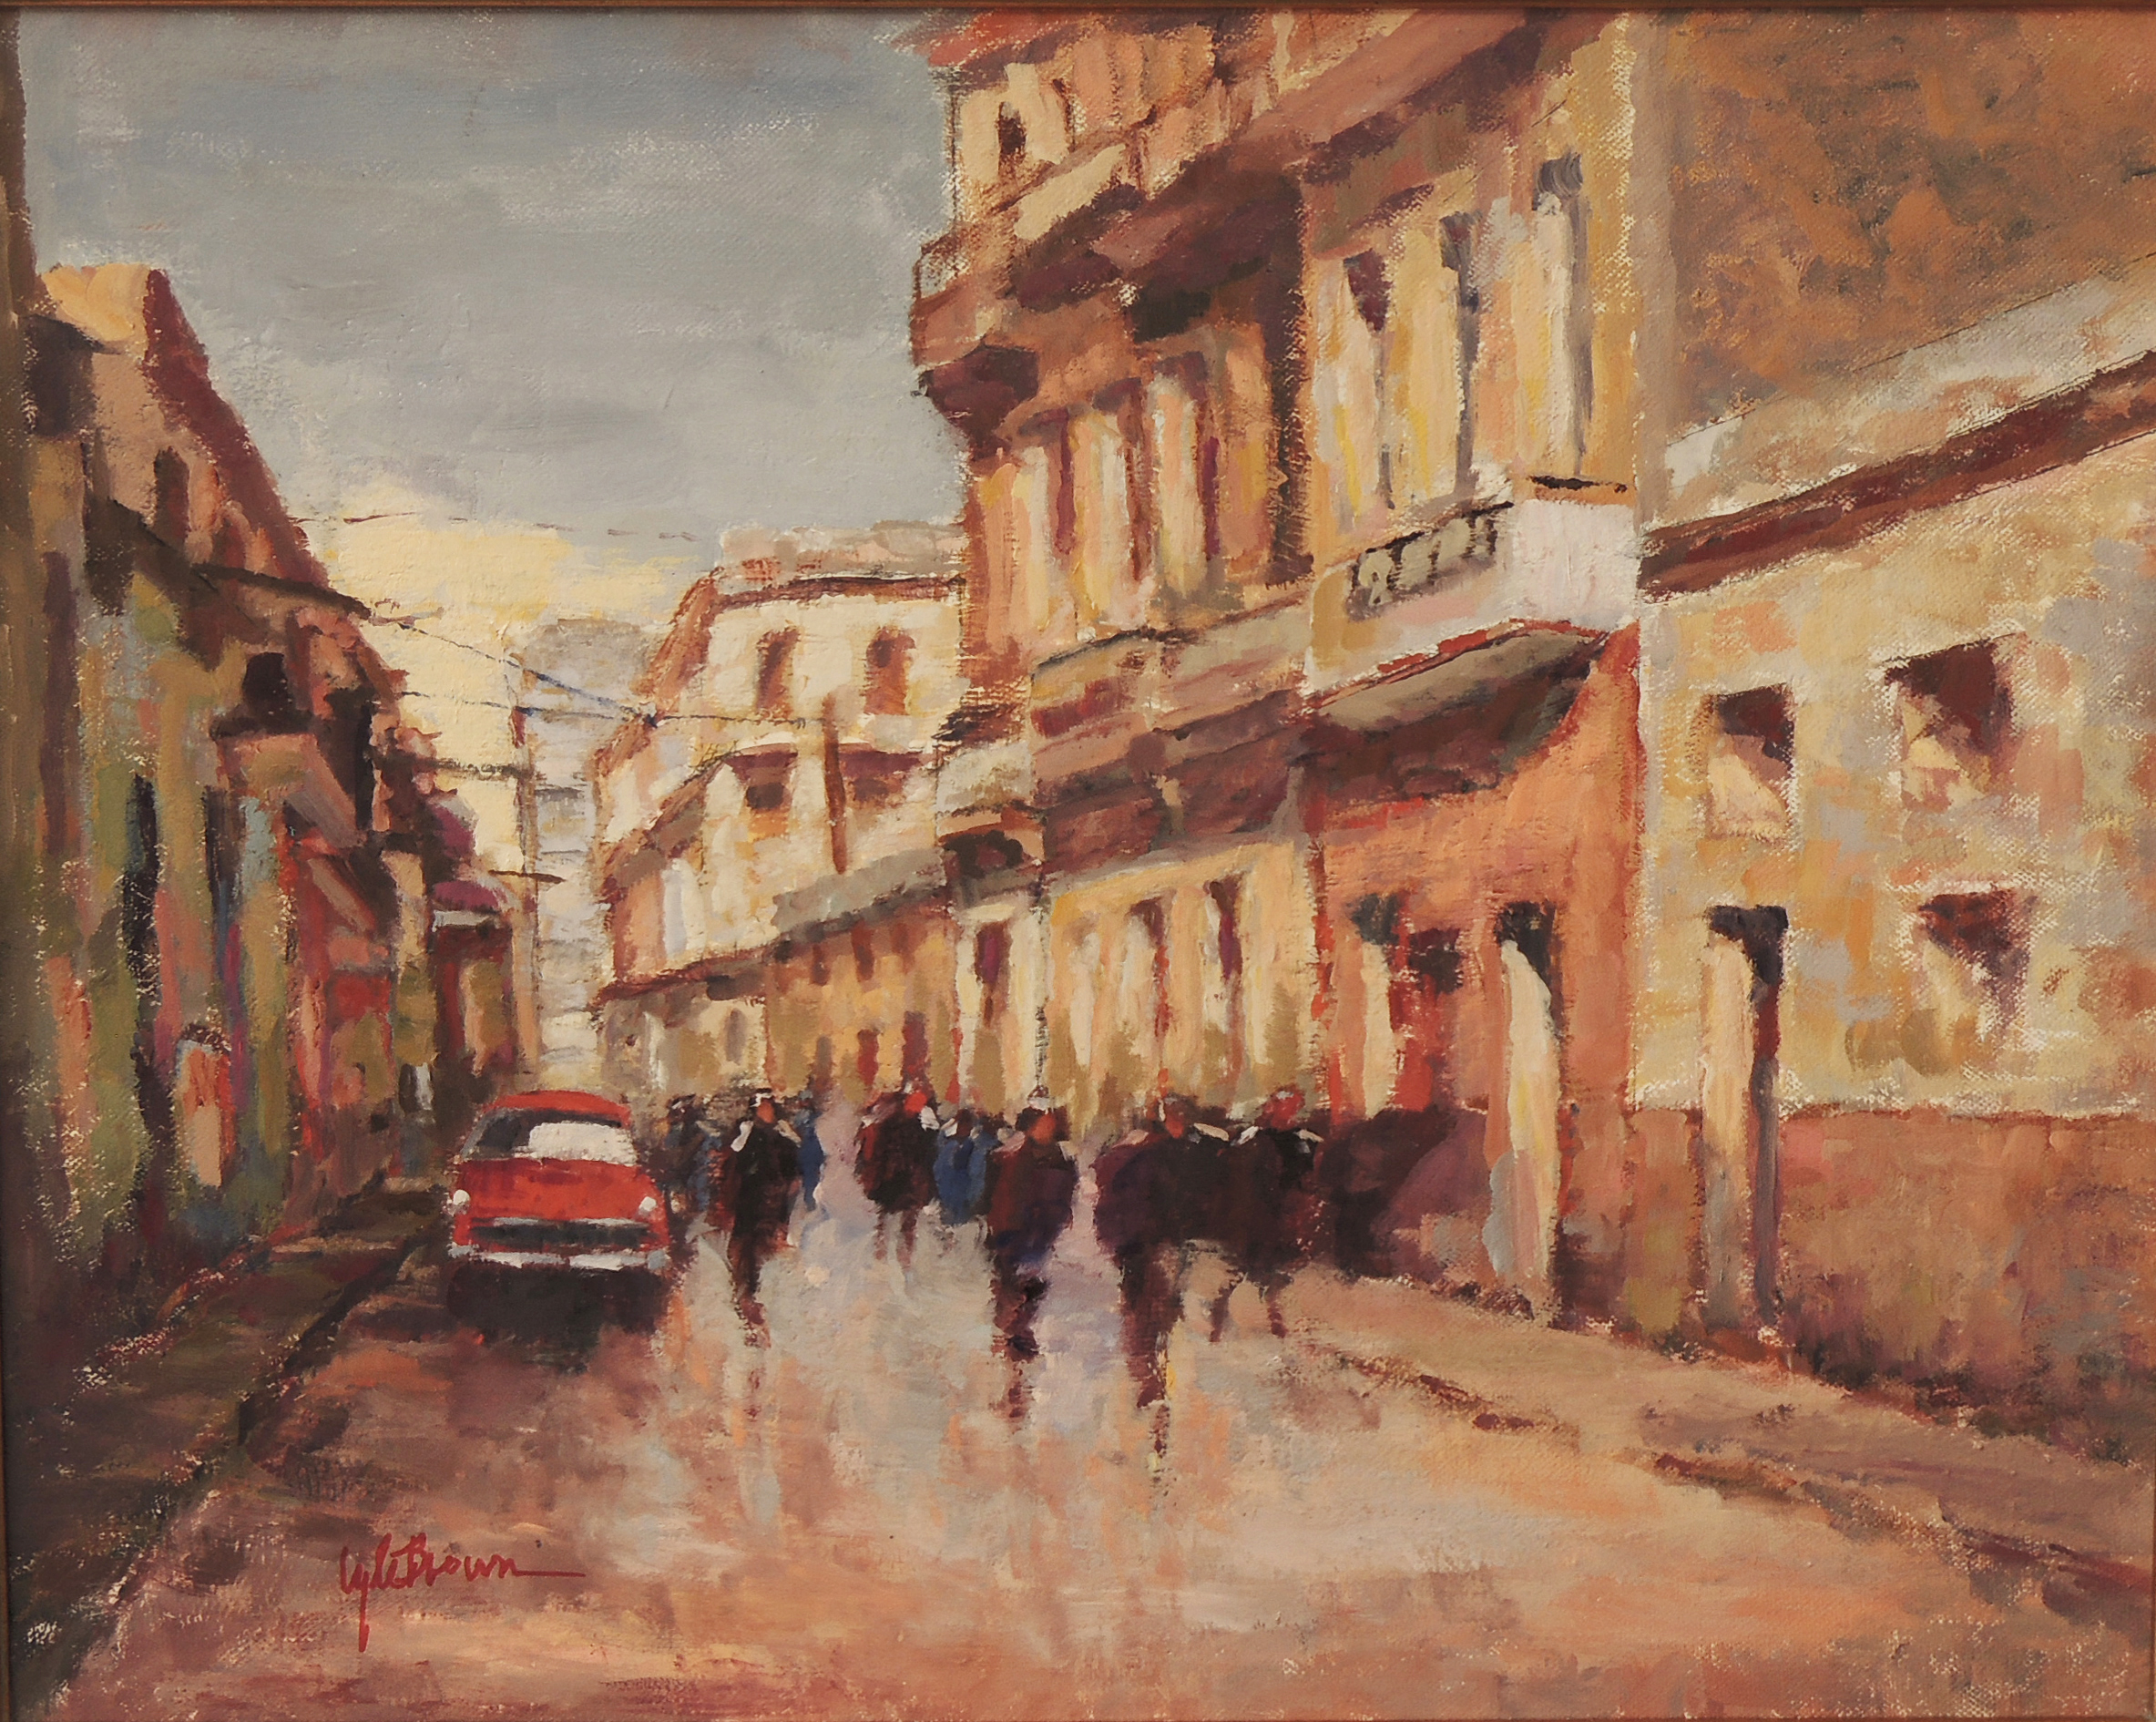 A Street in Havana 16 x 20 Oil